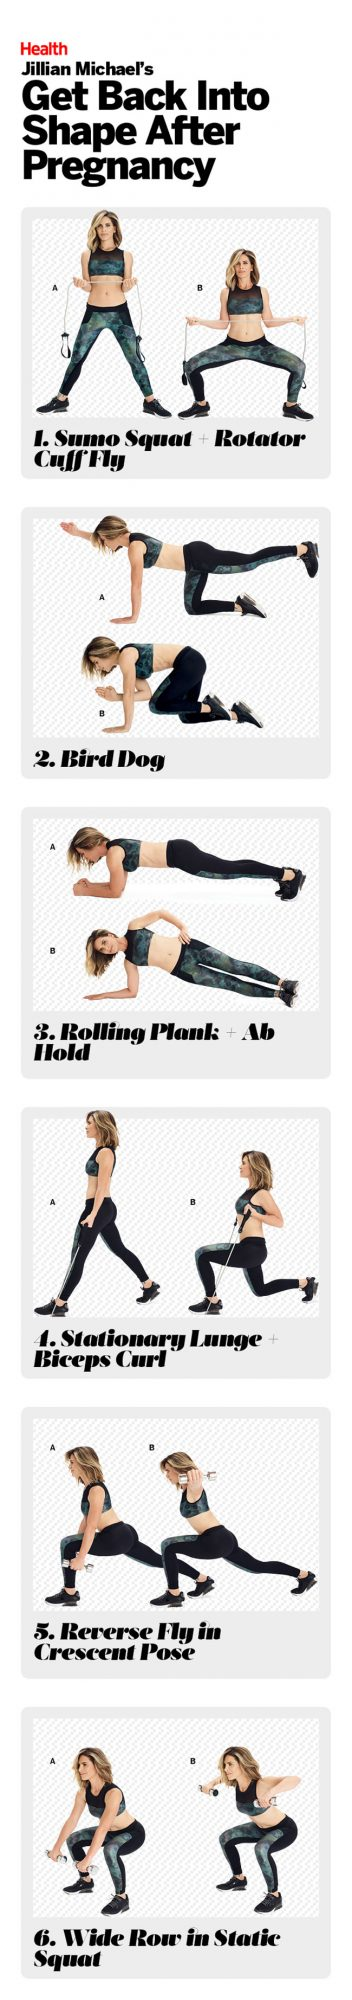 post pregnancy workout from jillian michaels health